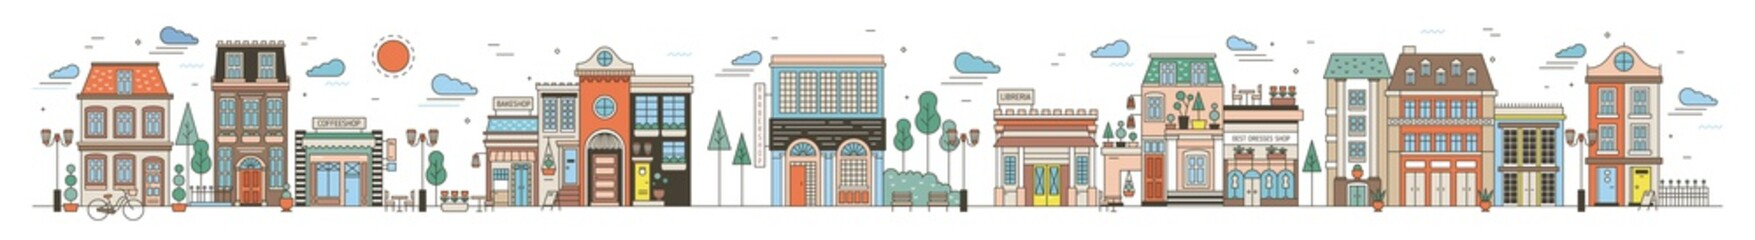 Fototapete - Colorful horizontal cityscape with street of European city full of elegant buildings, residential houses, stores and shops, public locations. Creative vector illustration in modern line art style.